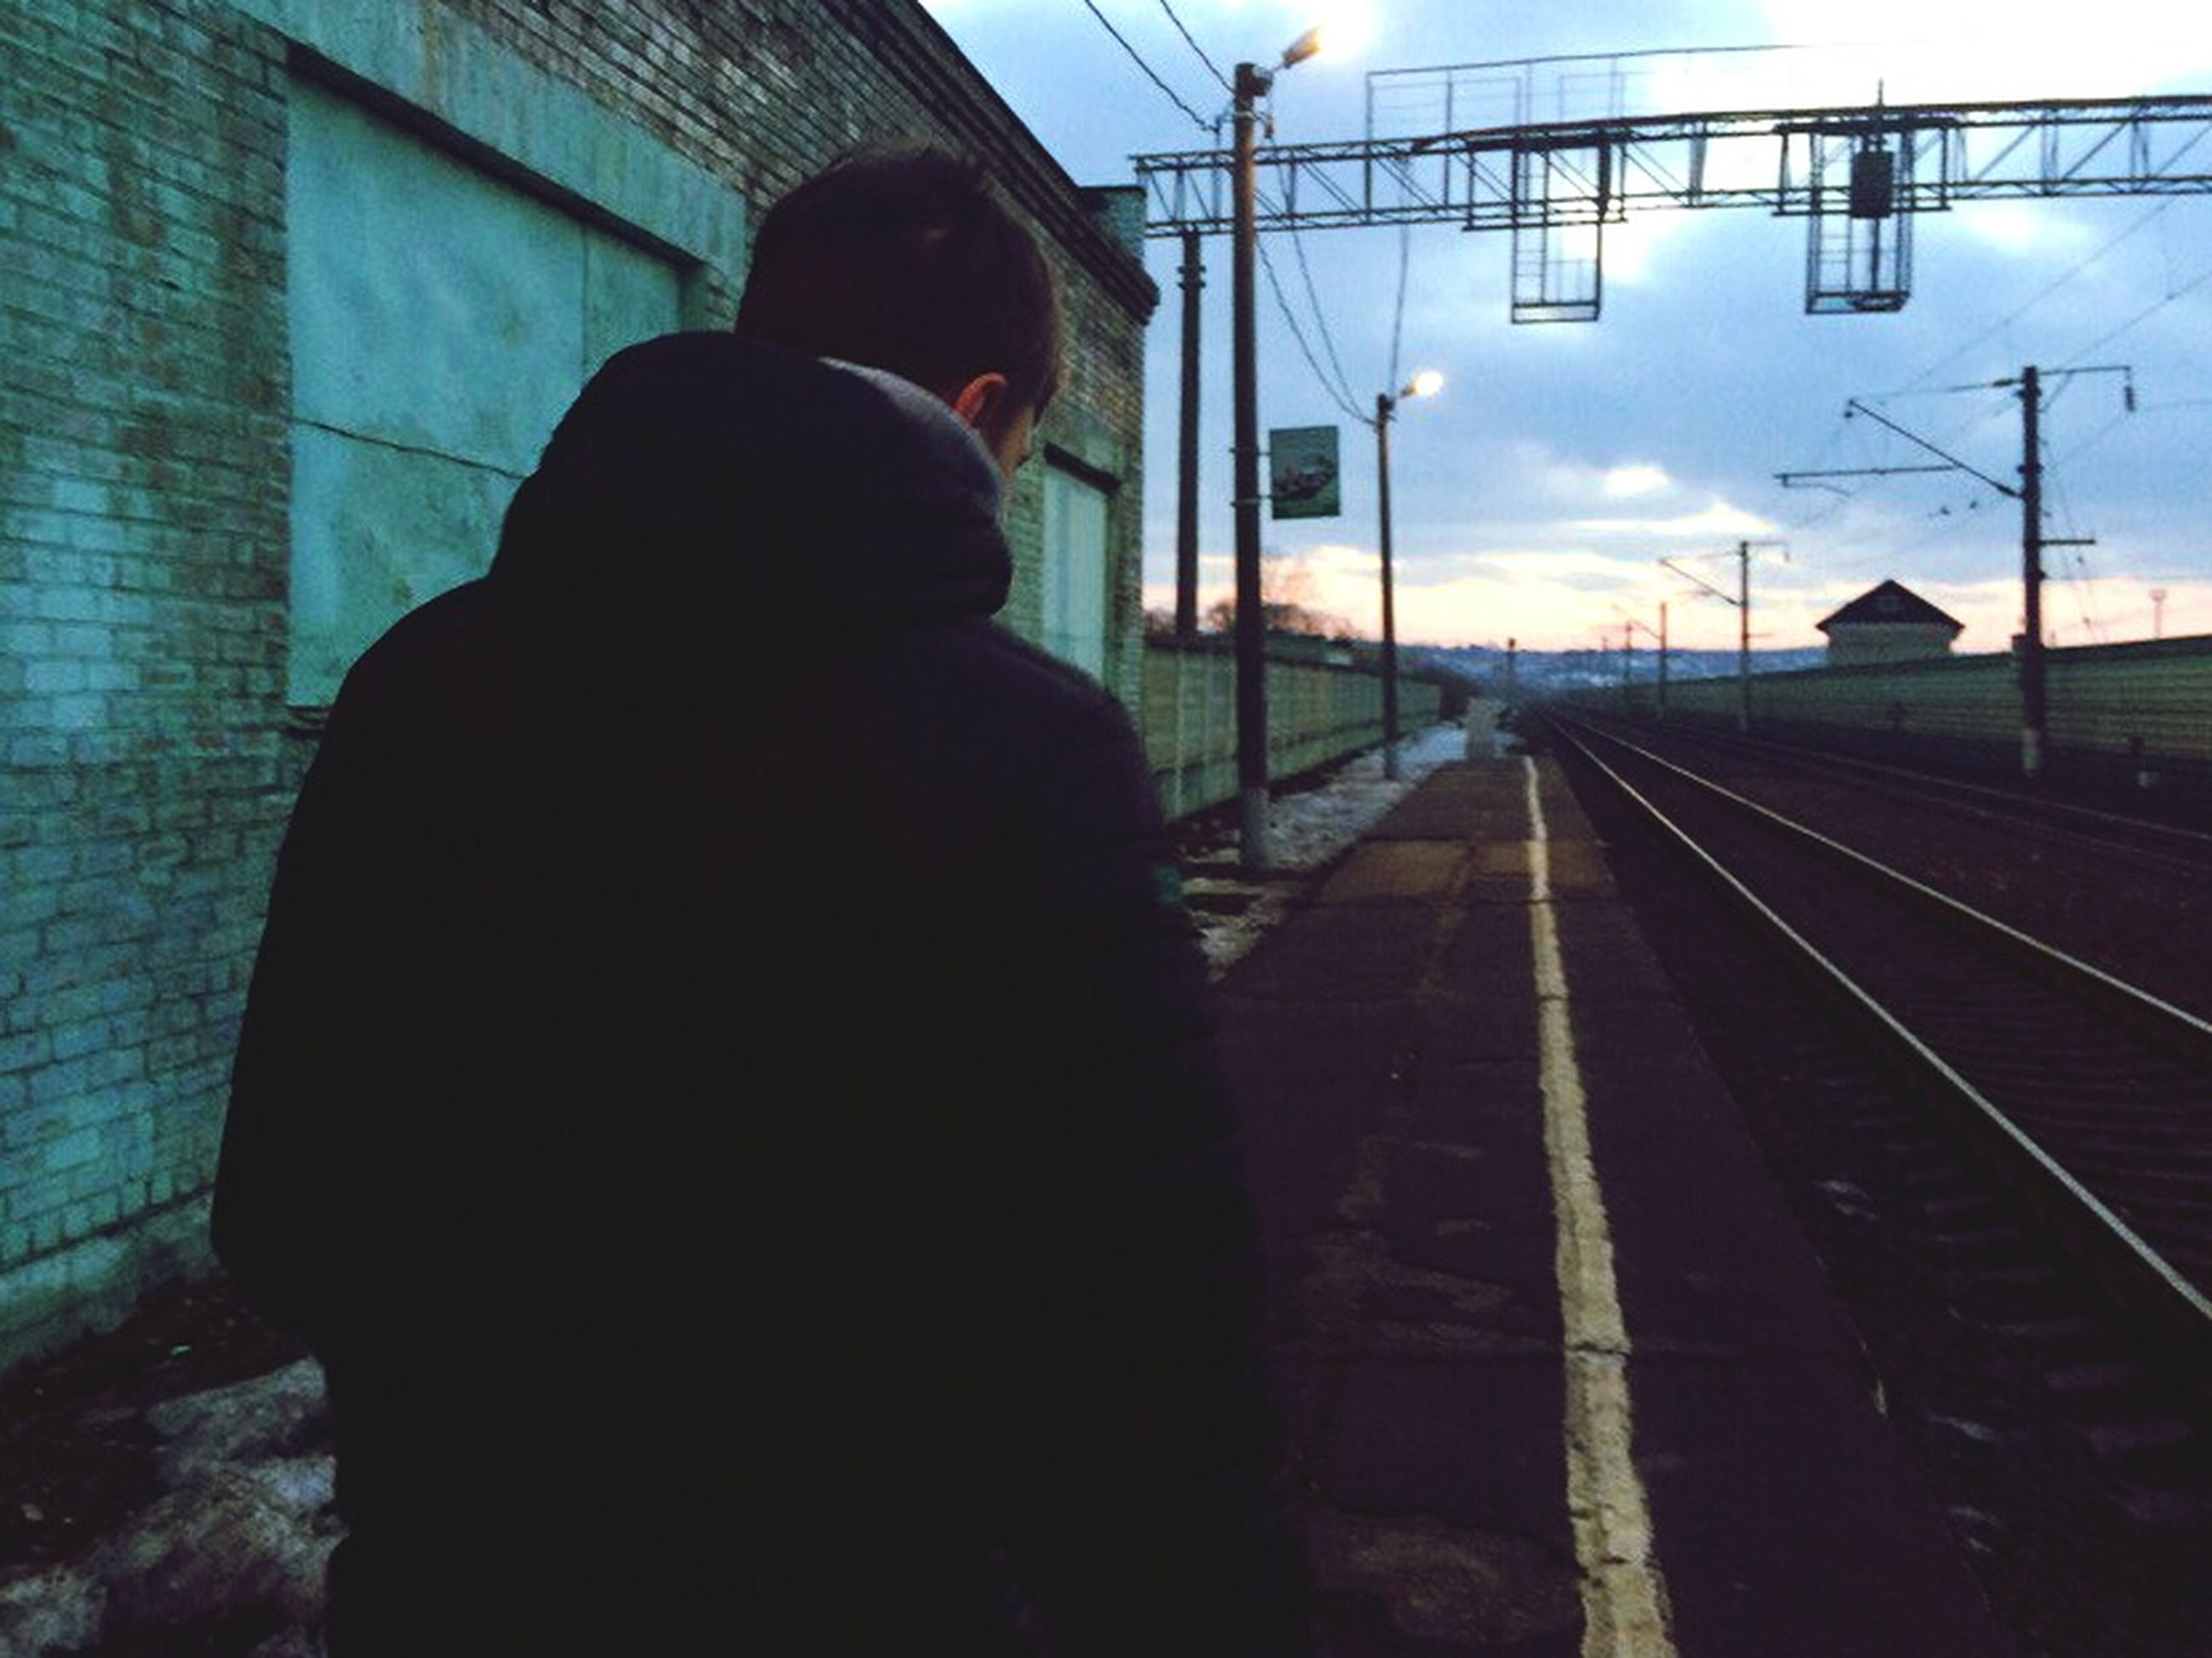 rear view, railroad track, men, transportation, railroad station, real people, silhouette, one person, outdoors, day, nature, people, adult